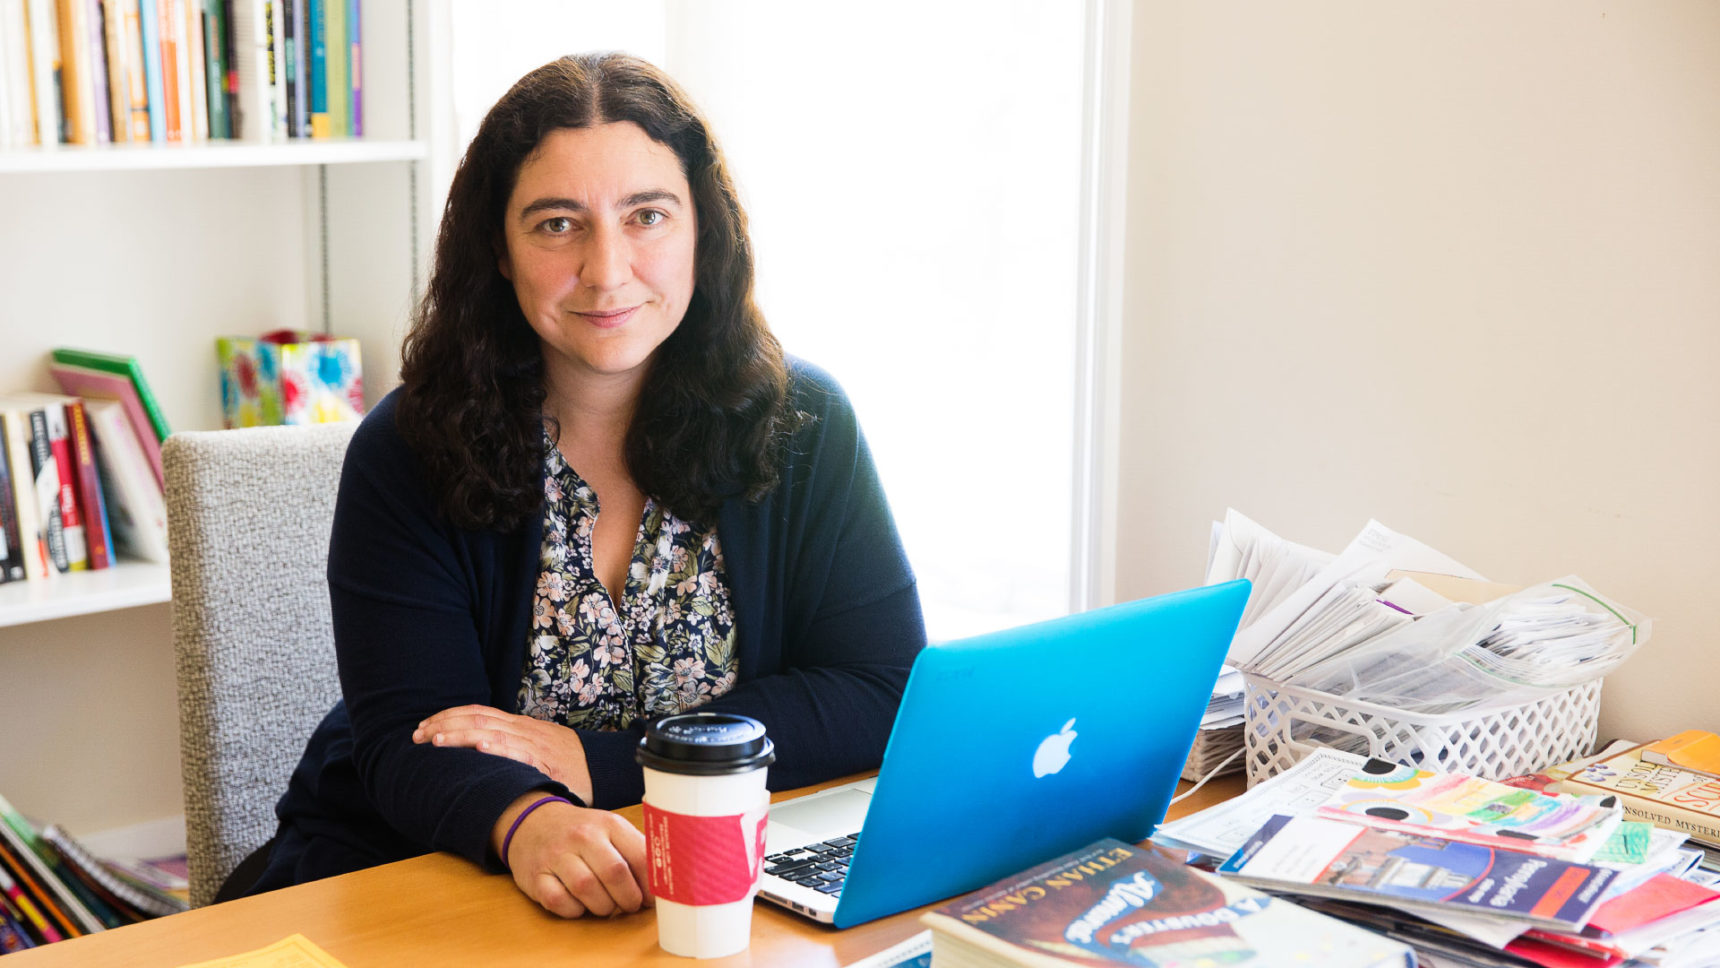 Carina Curto, a mathematician at Pennsylvania State University, explains how her background in theoretical physics helps her tackle daunting problems in theoretical neuroscience.